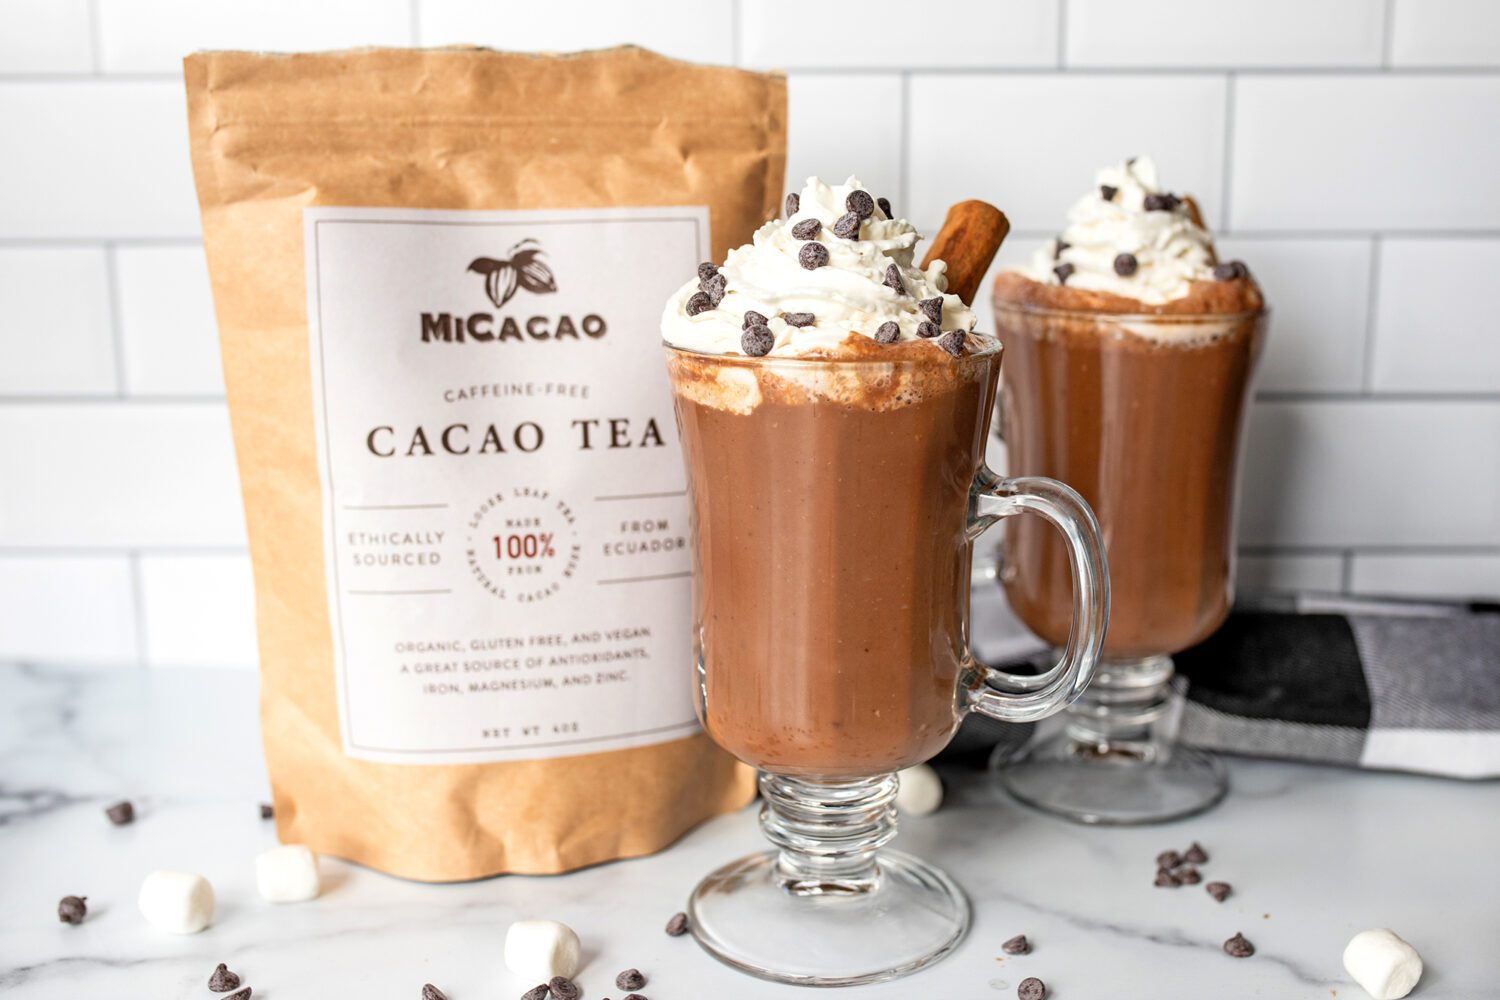 vegan chai hot cocoa in front of a MiCacao tea bag